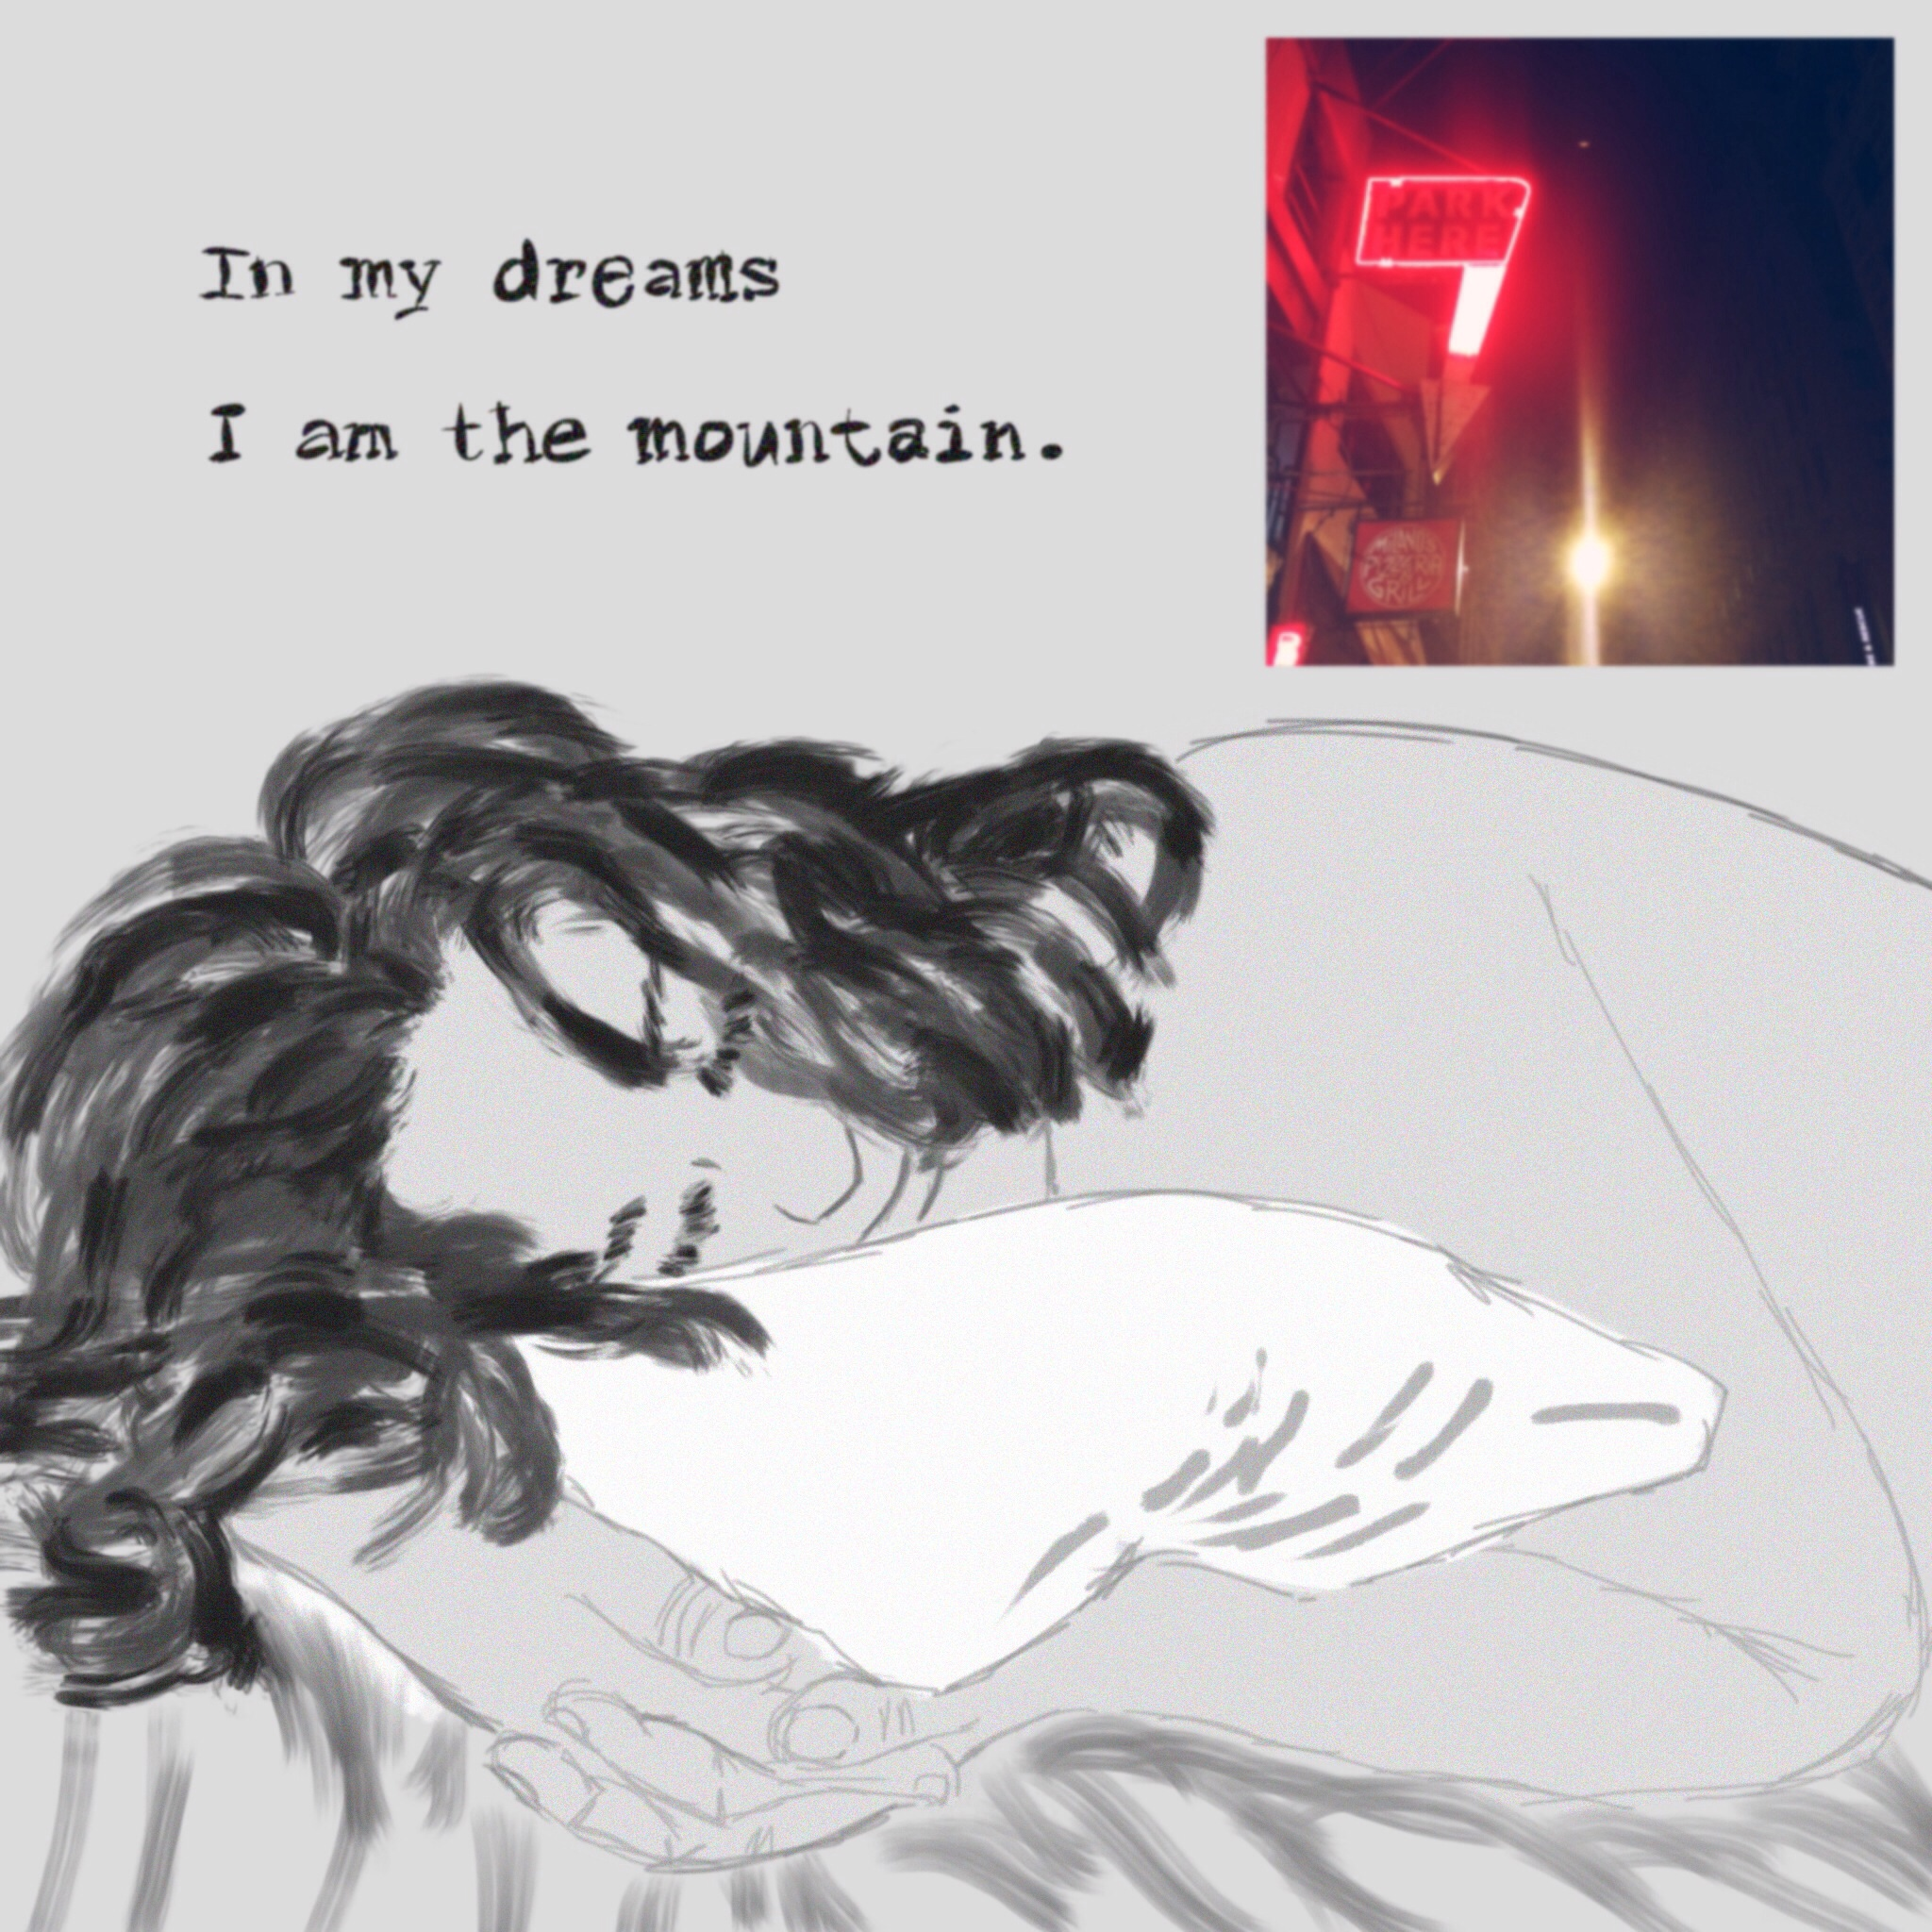 In my dreams I am the mountain.